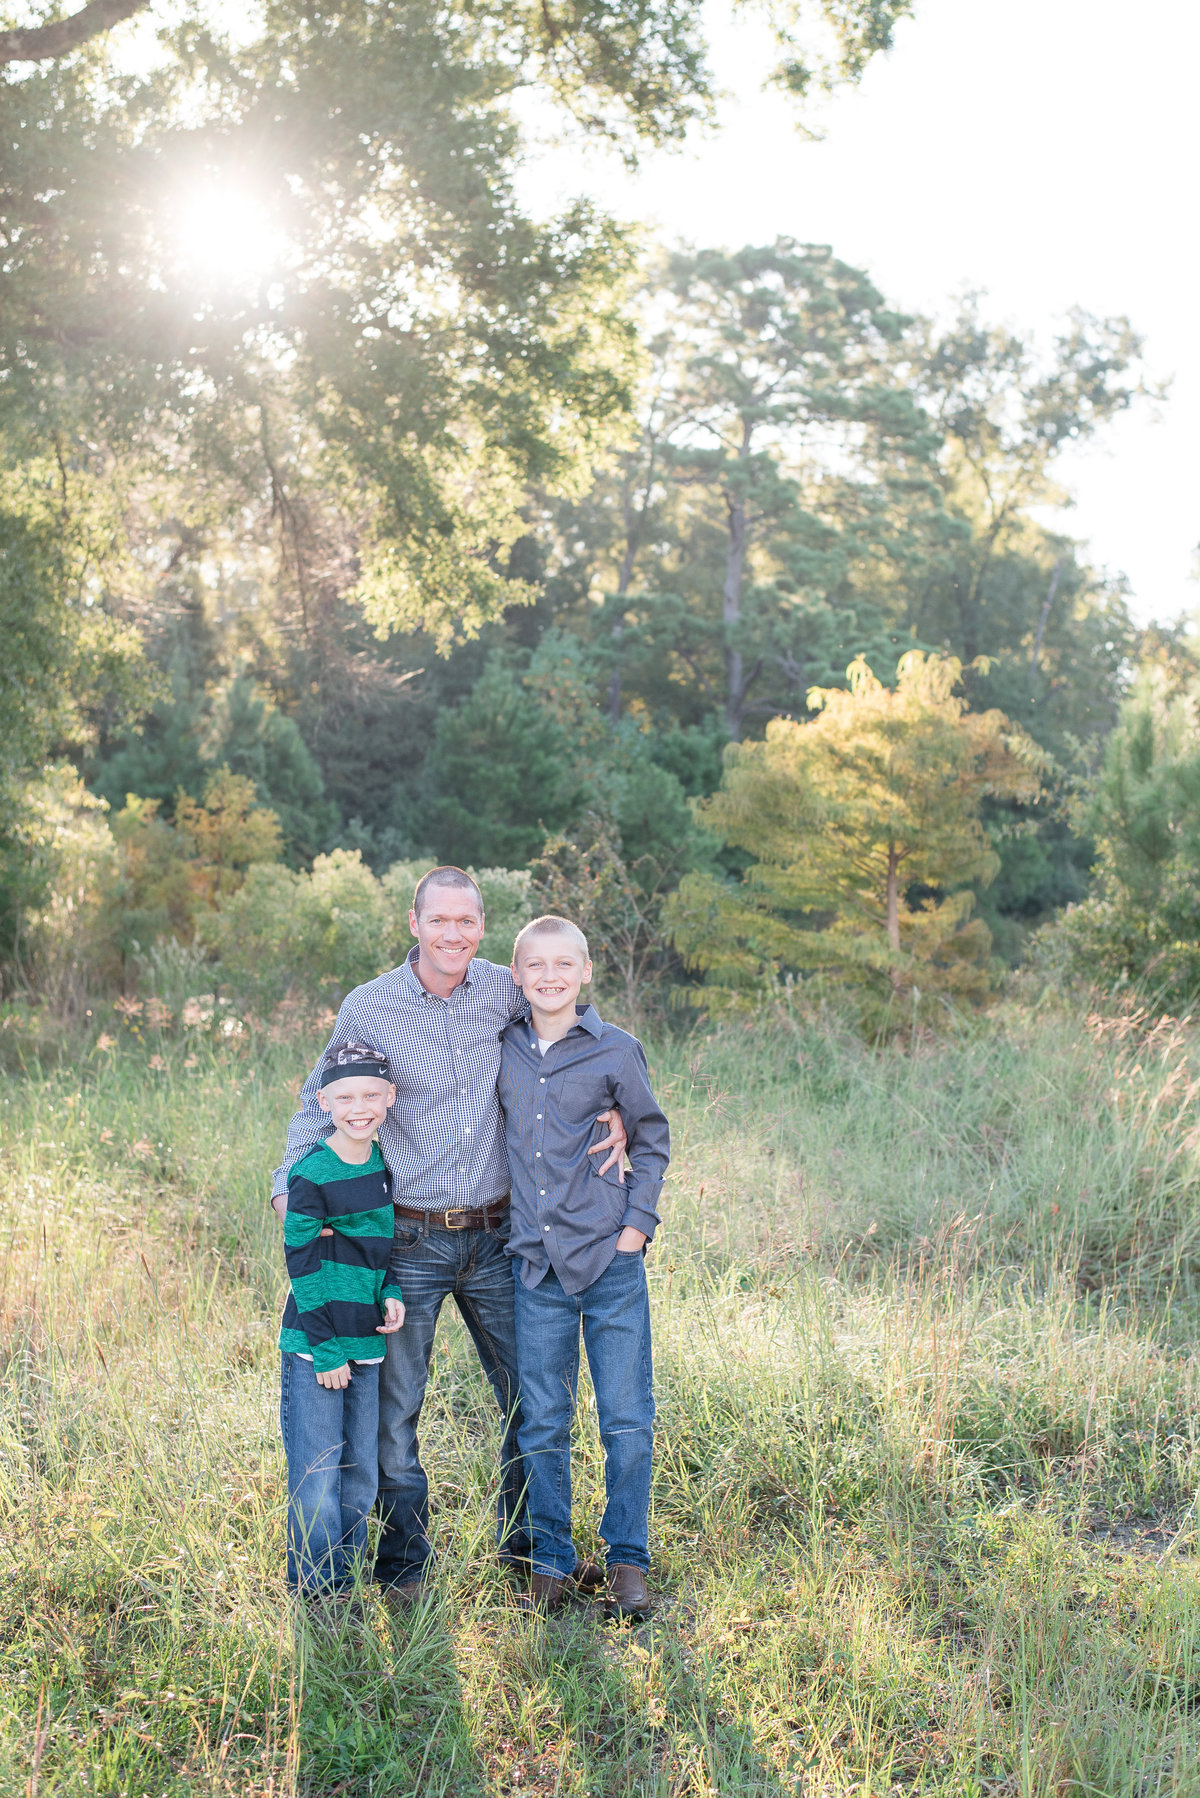 KingwoodFamilyPhotographer_Brewer-30